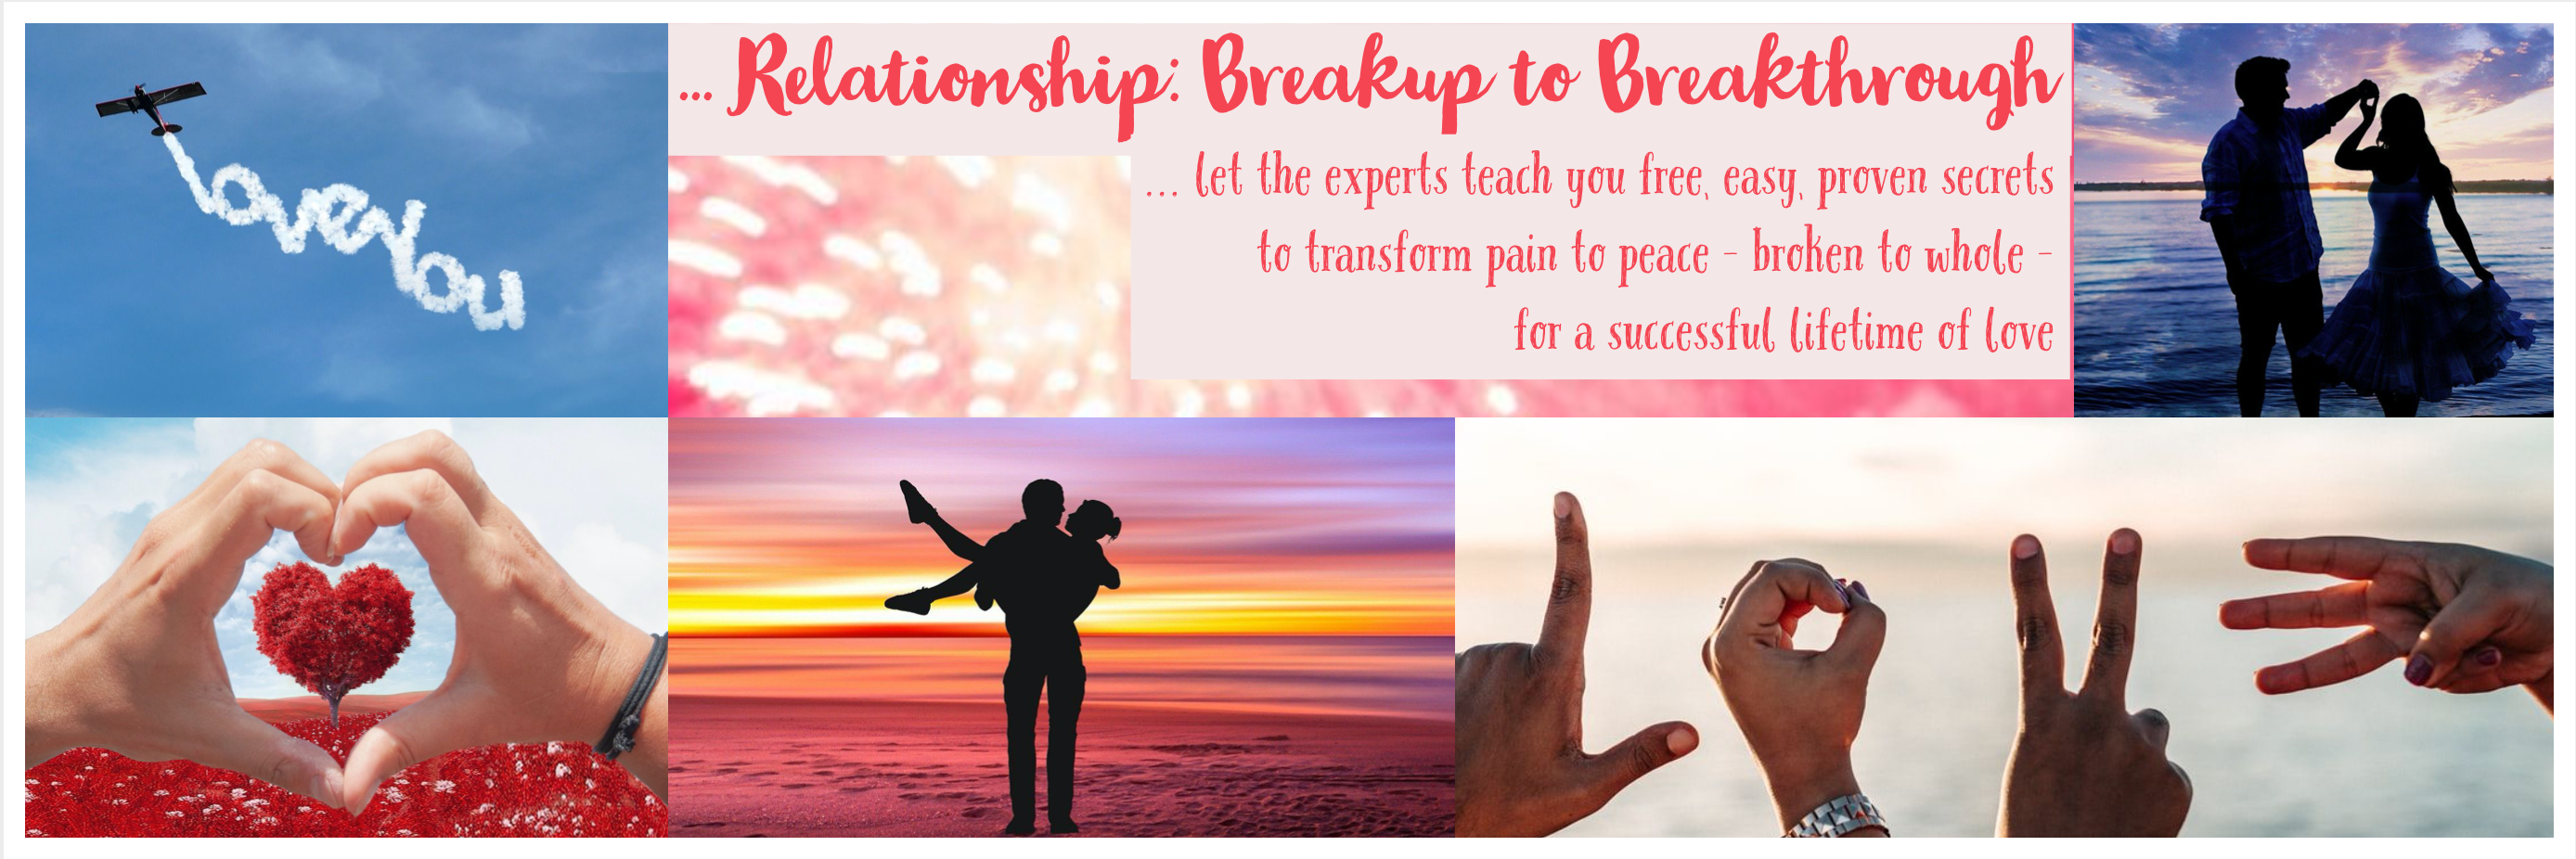 FREE ONLiNE SUMMiT: Relationship Breakup to Breakthrough